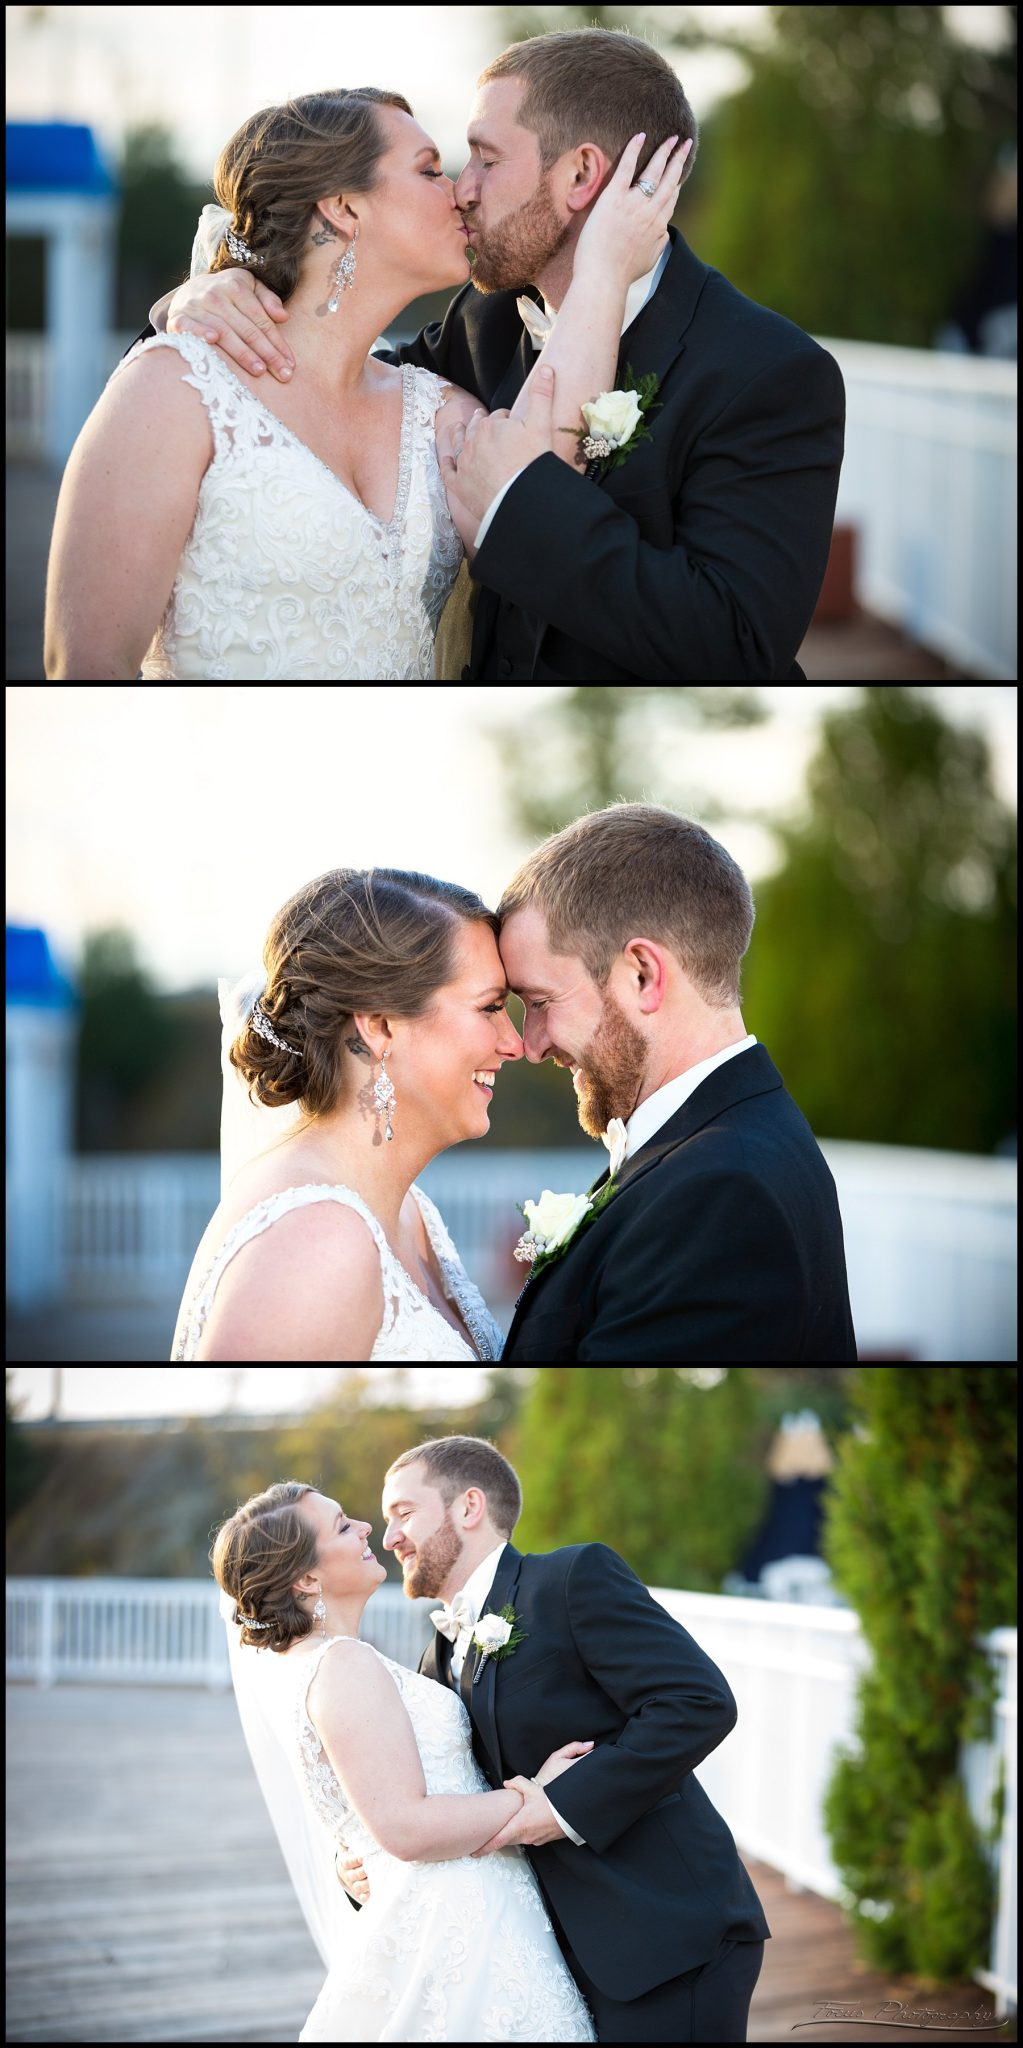 couple's pictures at Wentworth wedding